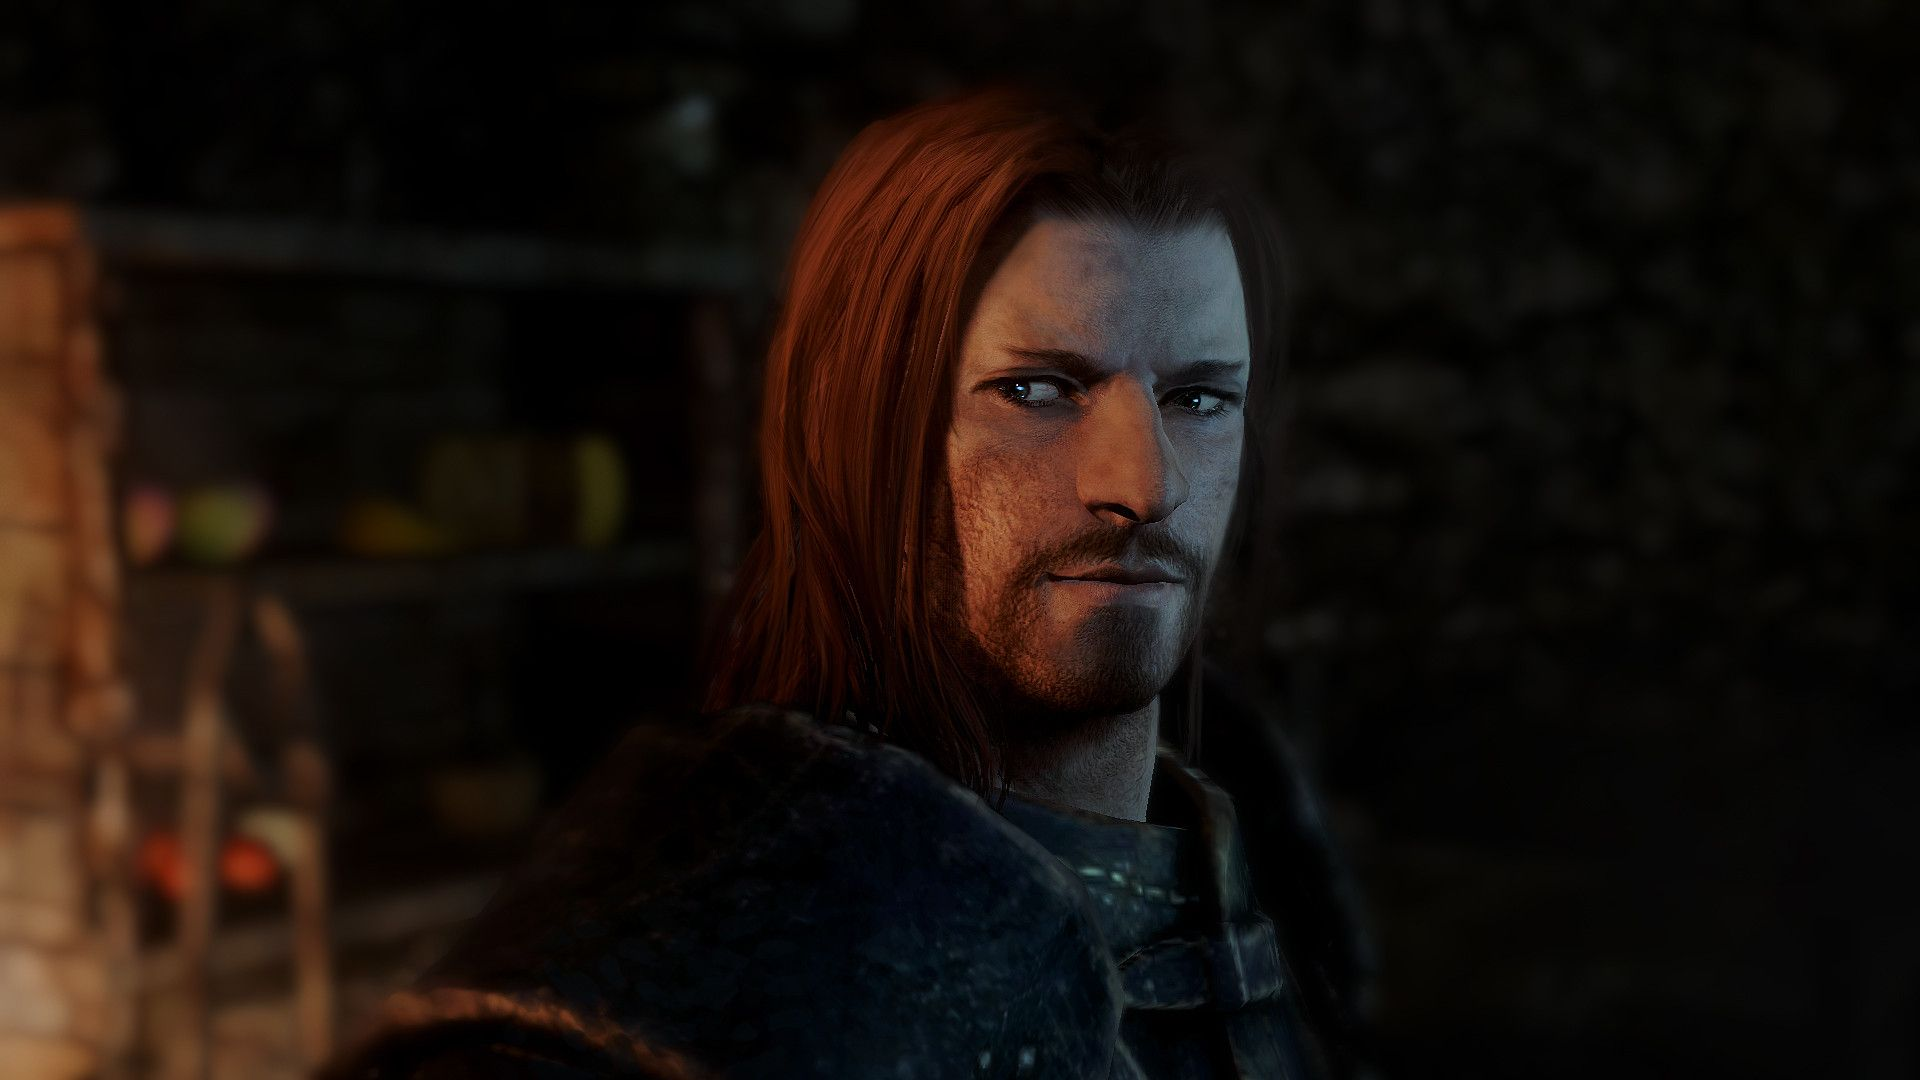 Hi-Res pic of Brynjolf from Skyrim  The biggest crush I had